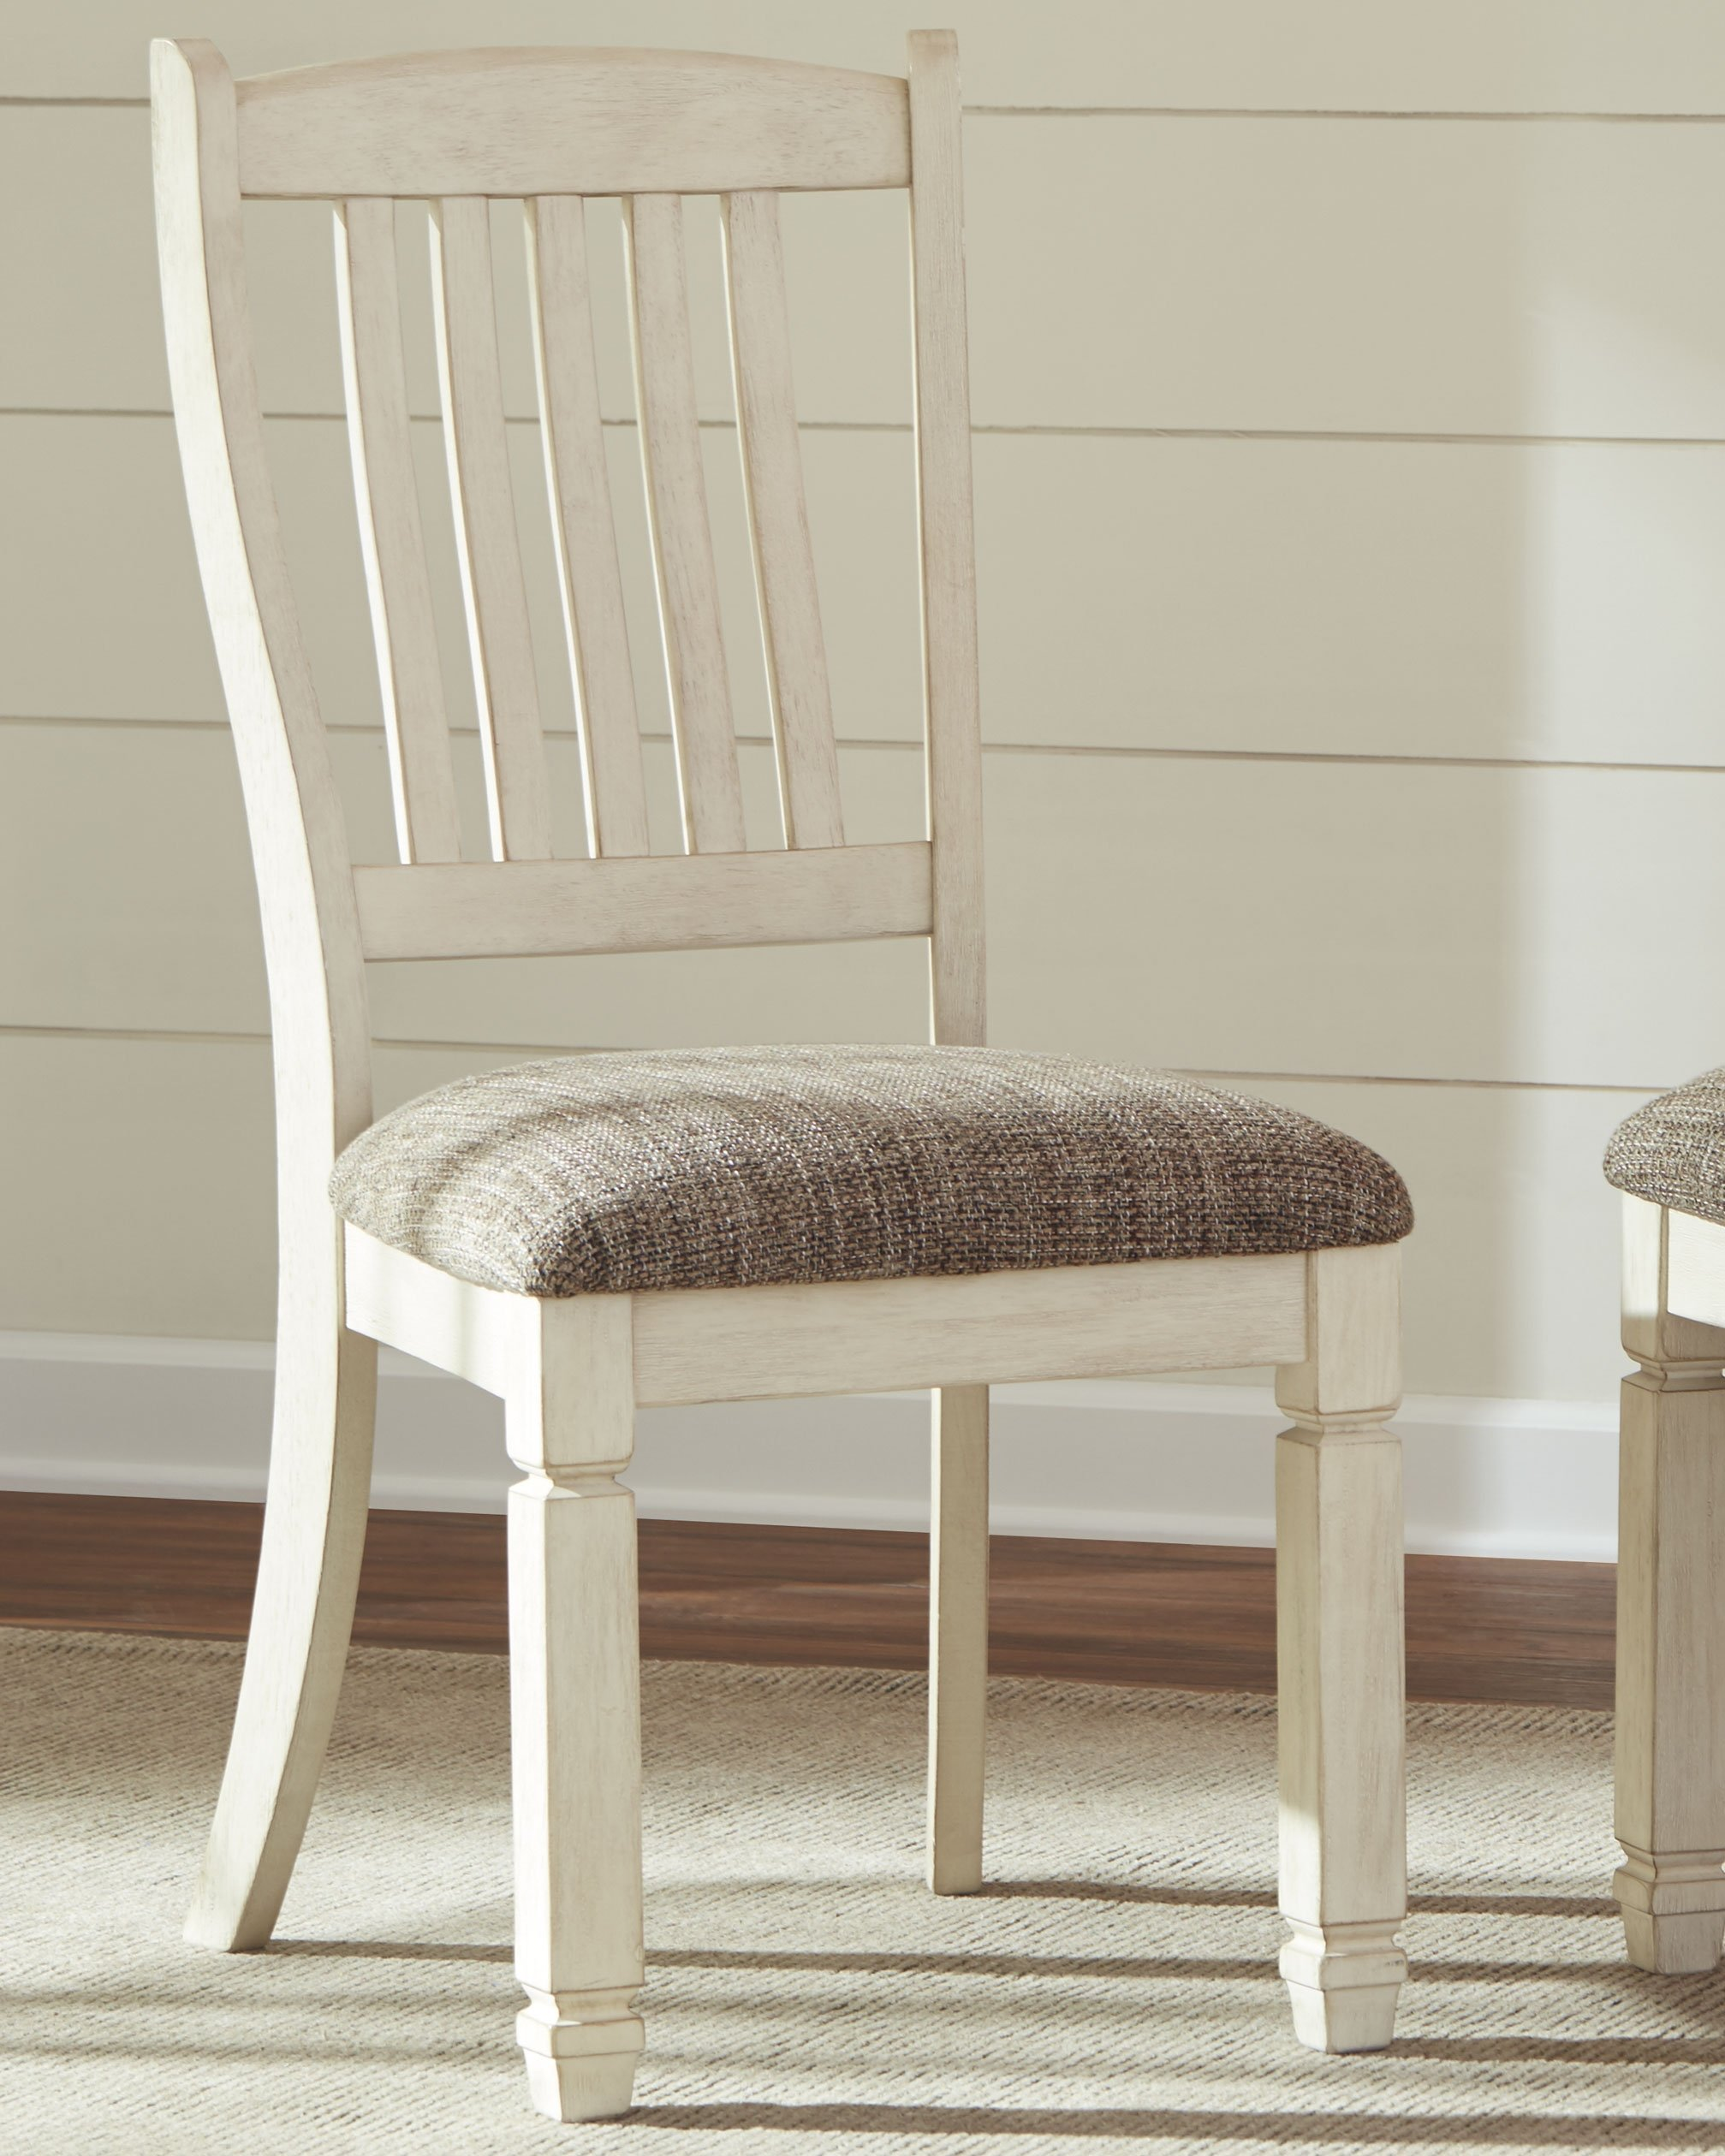 Ashley Furniture Signature Design - Bolanburg Dining Room Chair - Antique White by Signature Design by Ashley (Image #2)